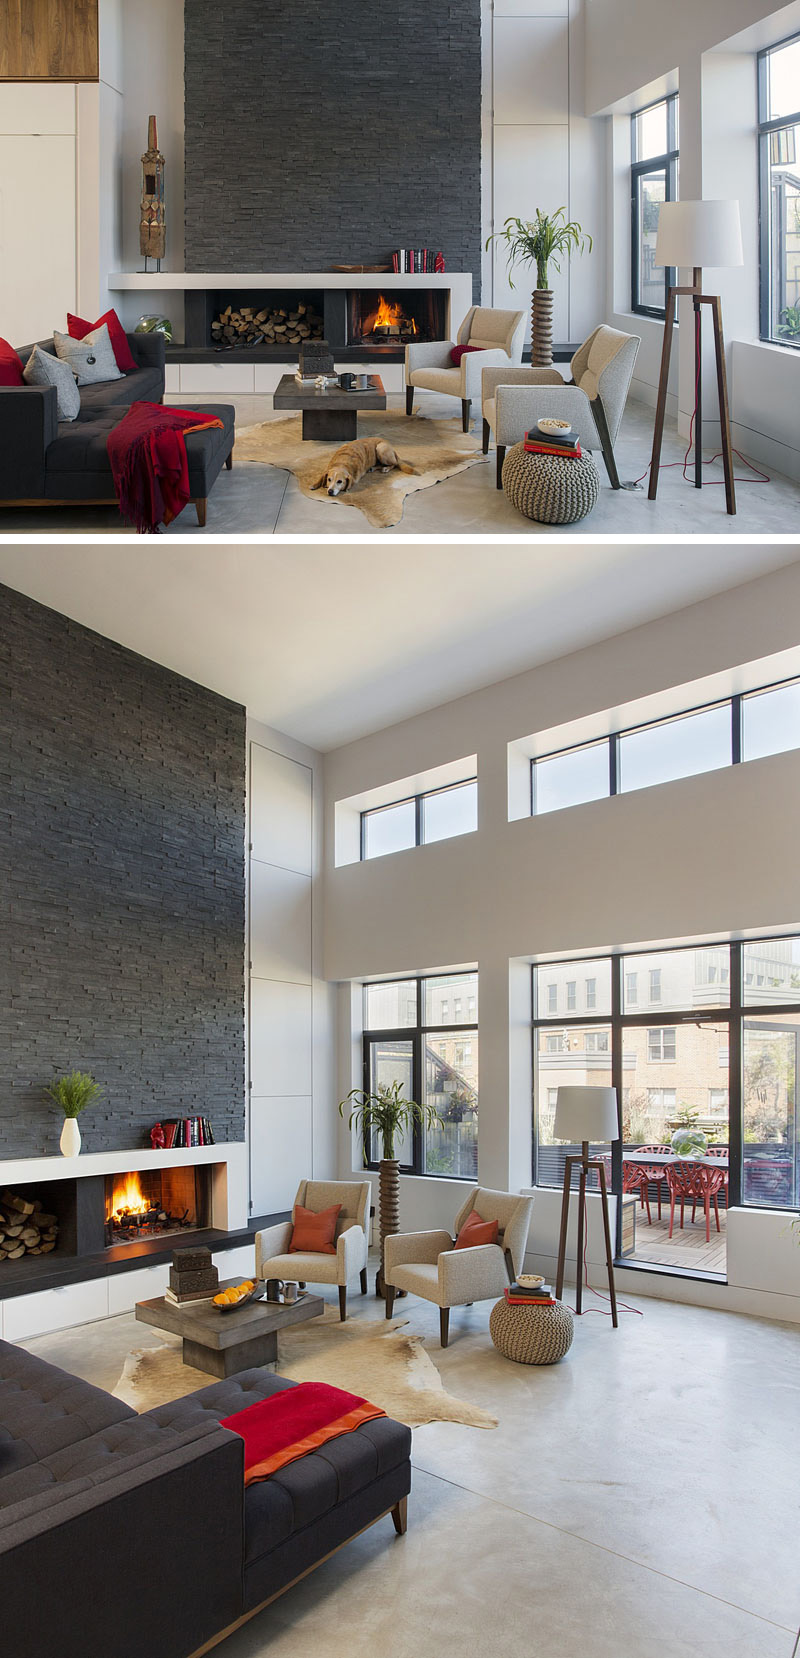 In this modern living room, the wood fire place is framed in a white display shelf, and sits in front of dark stone accent wall. Large windows and glass doors to outside provide extra light in this open room.